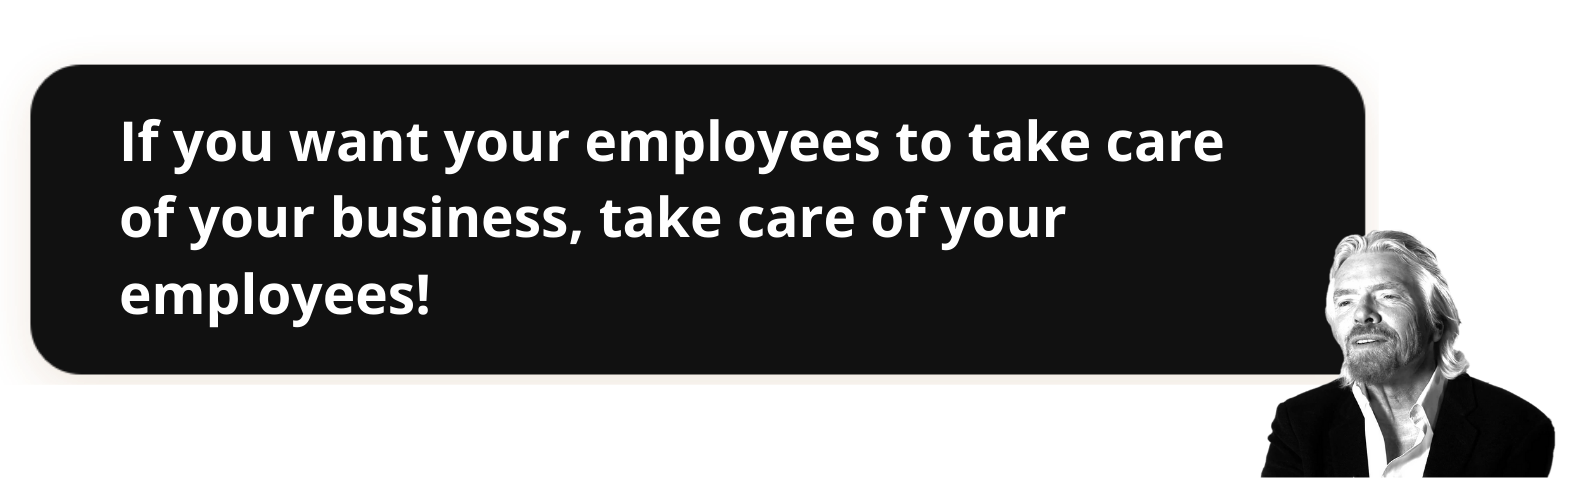 If you want your employees to take care of your business, take care of your employees!